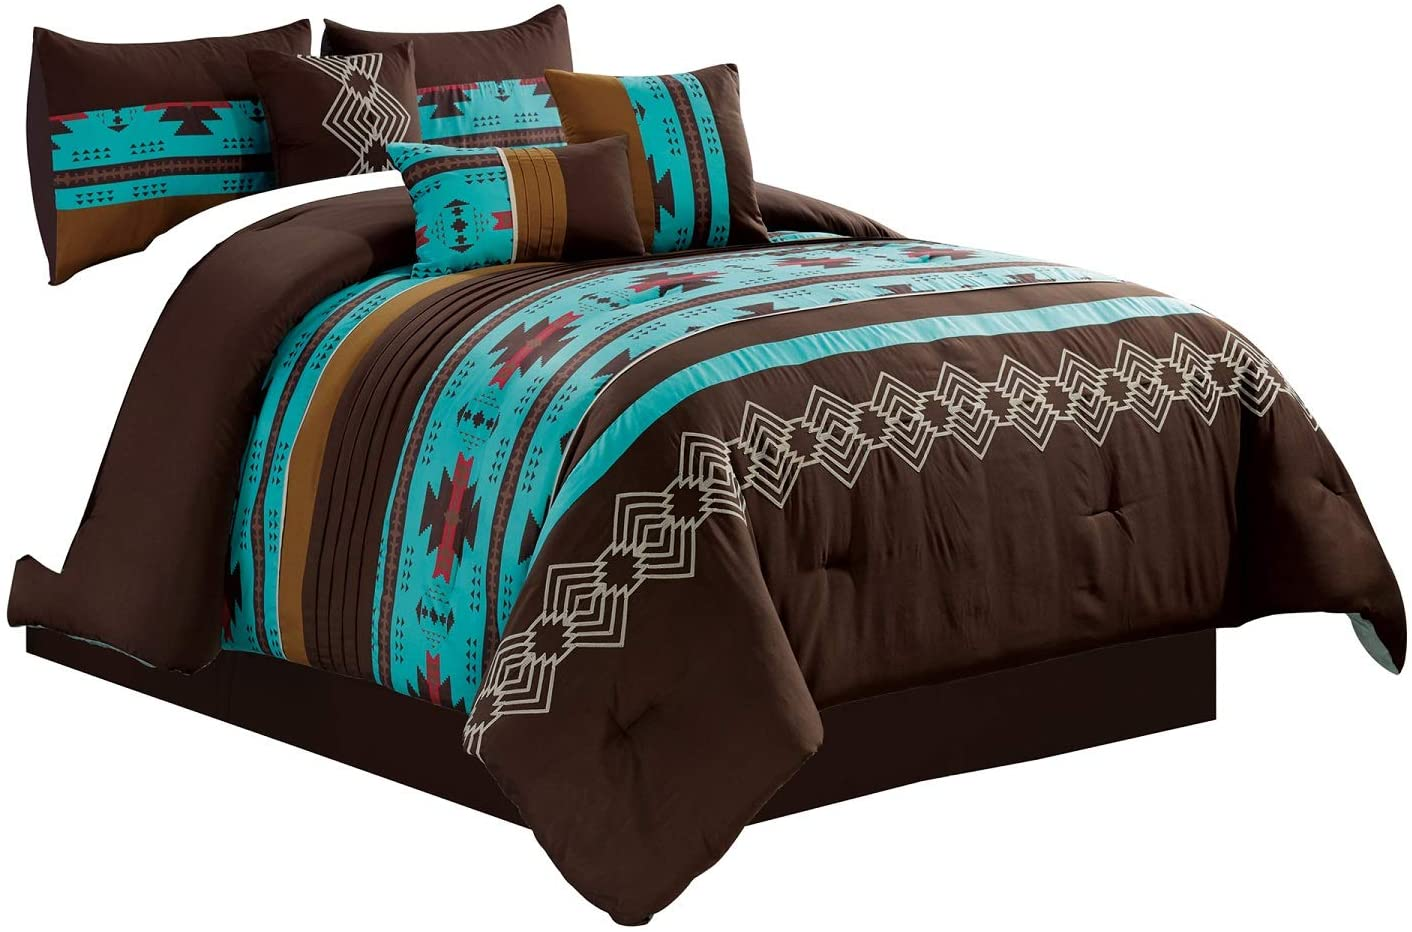 WPM WORLD PRODUCTS MART 7 Piece Western Southwestern Native American Design Comforter Set Multicolor Teal/Coffee Brown Embroidered Queen Size Bed in a Bag Navajo Bedding Set- Makala